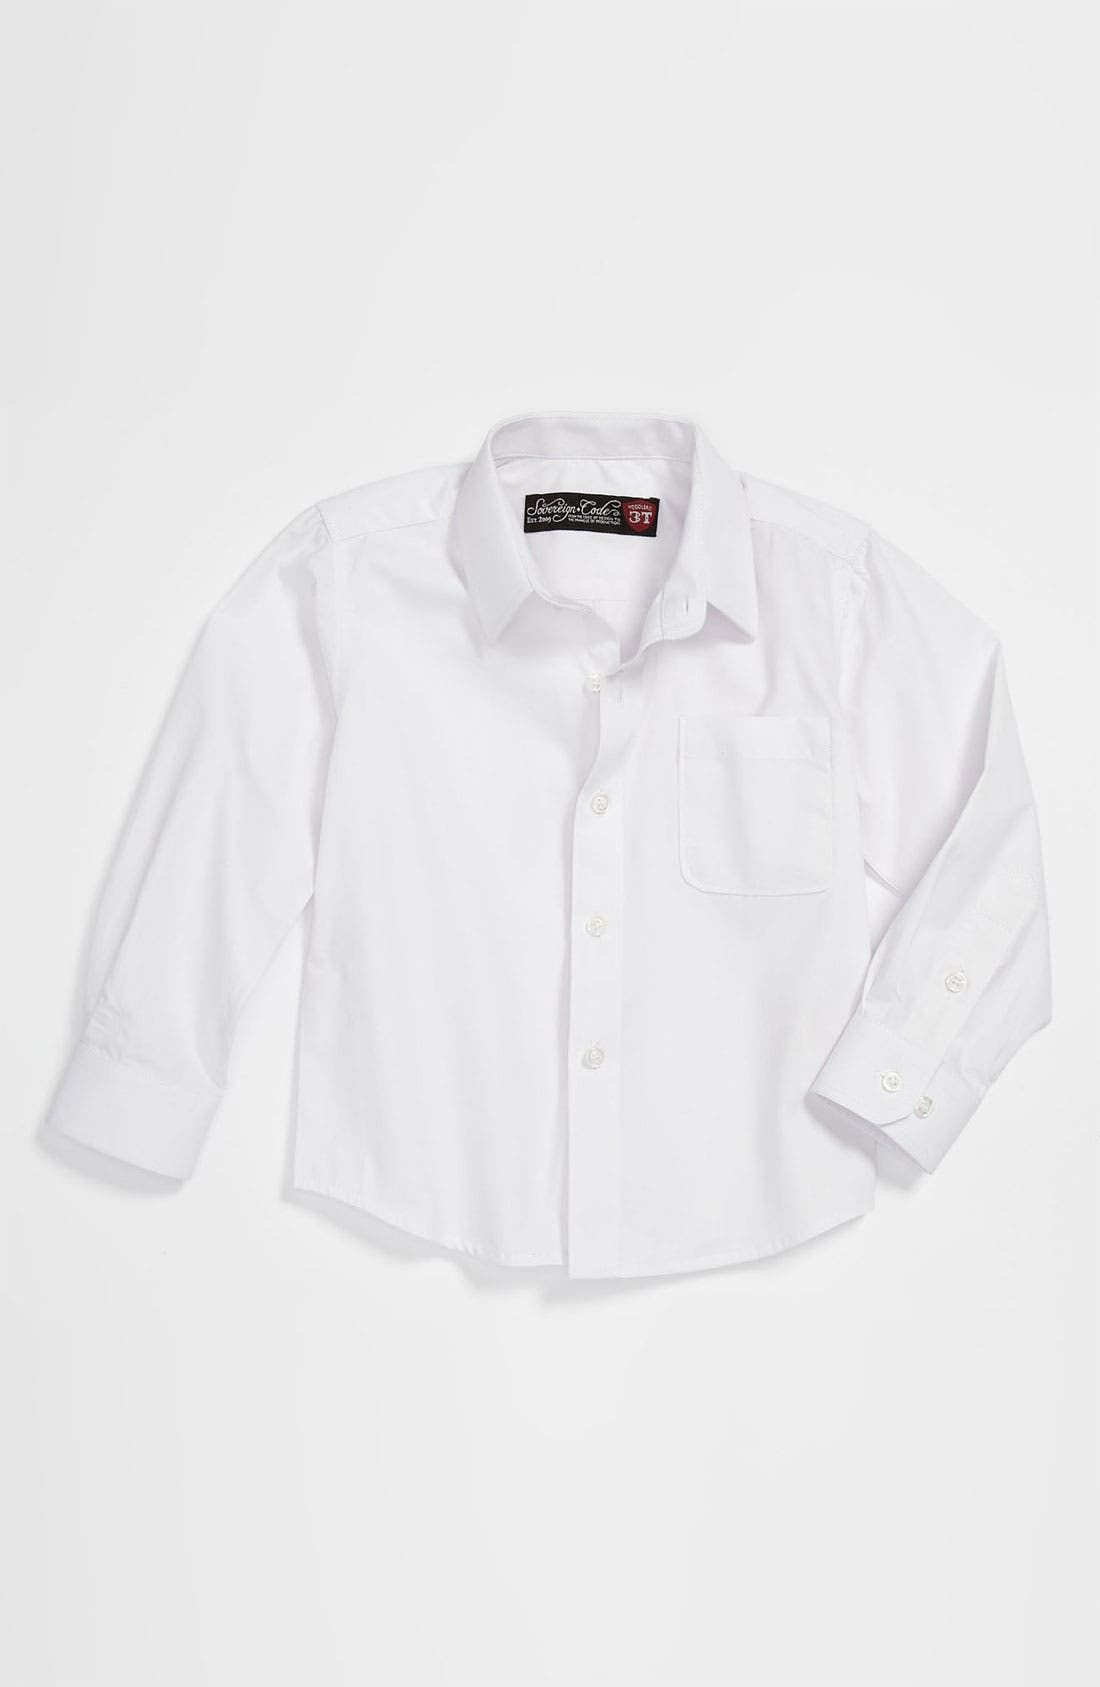 Main Image - Sovereign Code Woven Shirt (Infant)